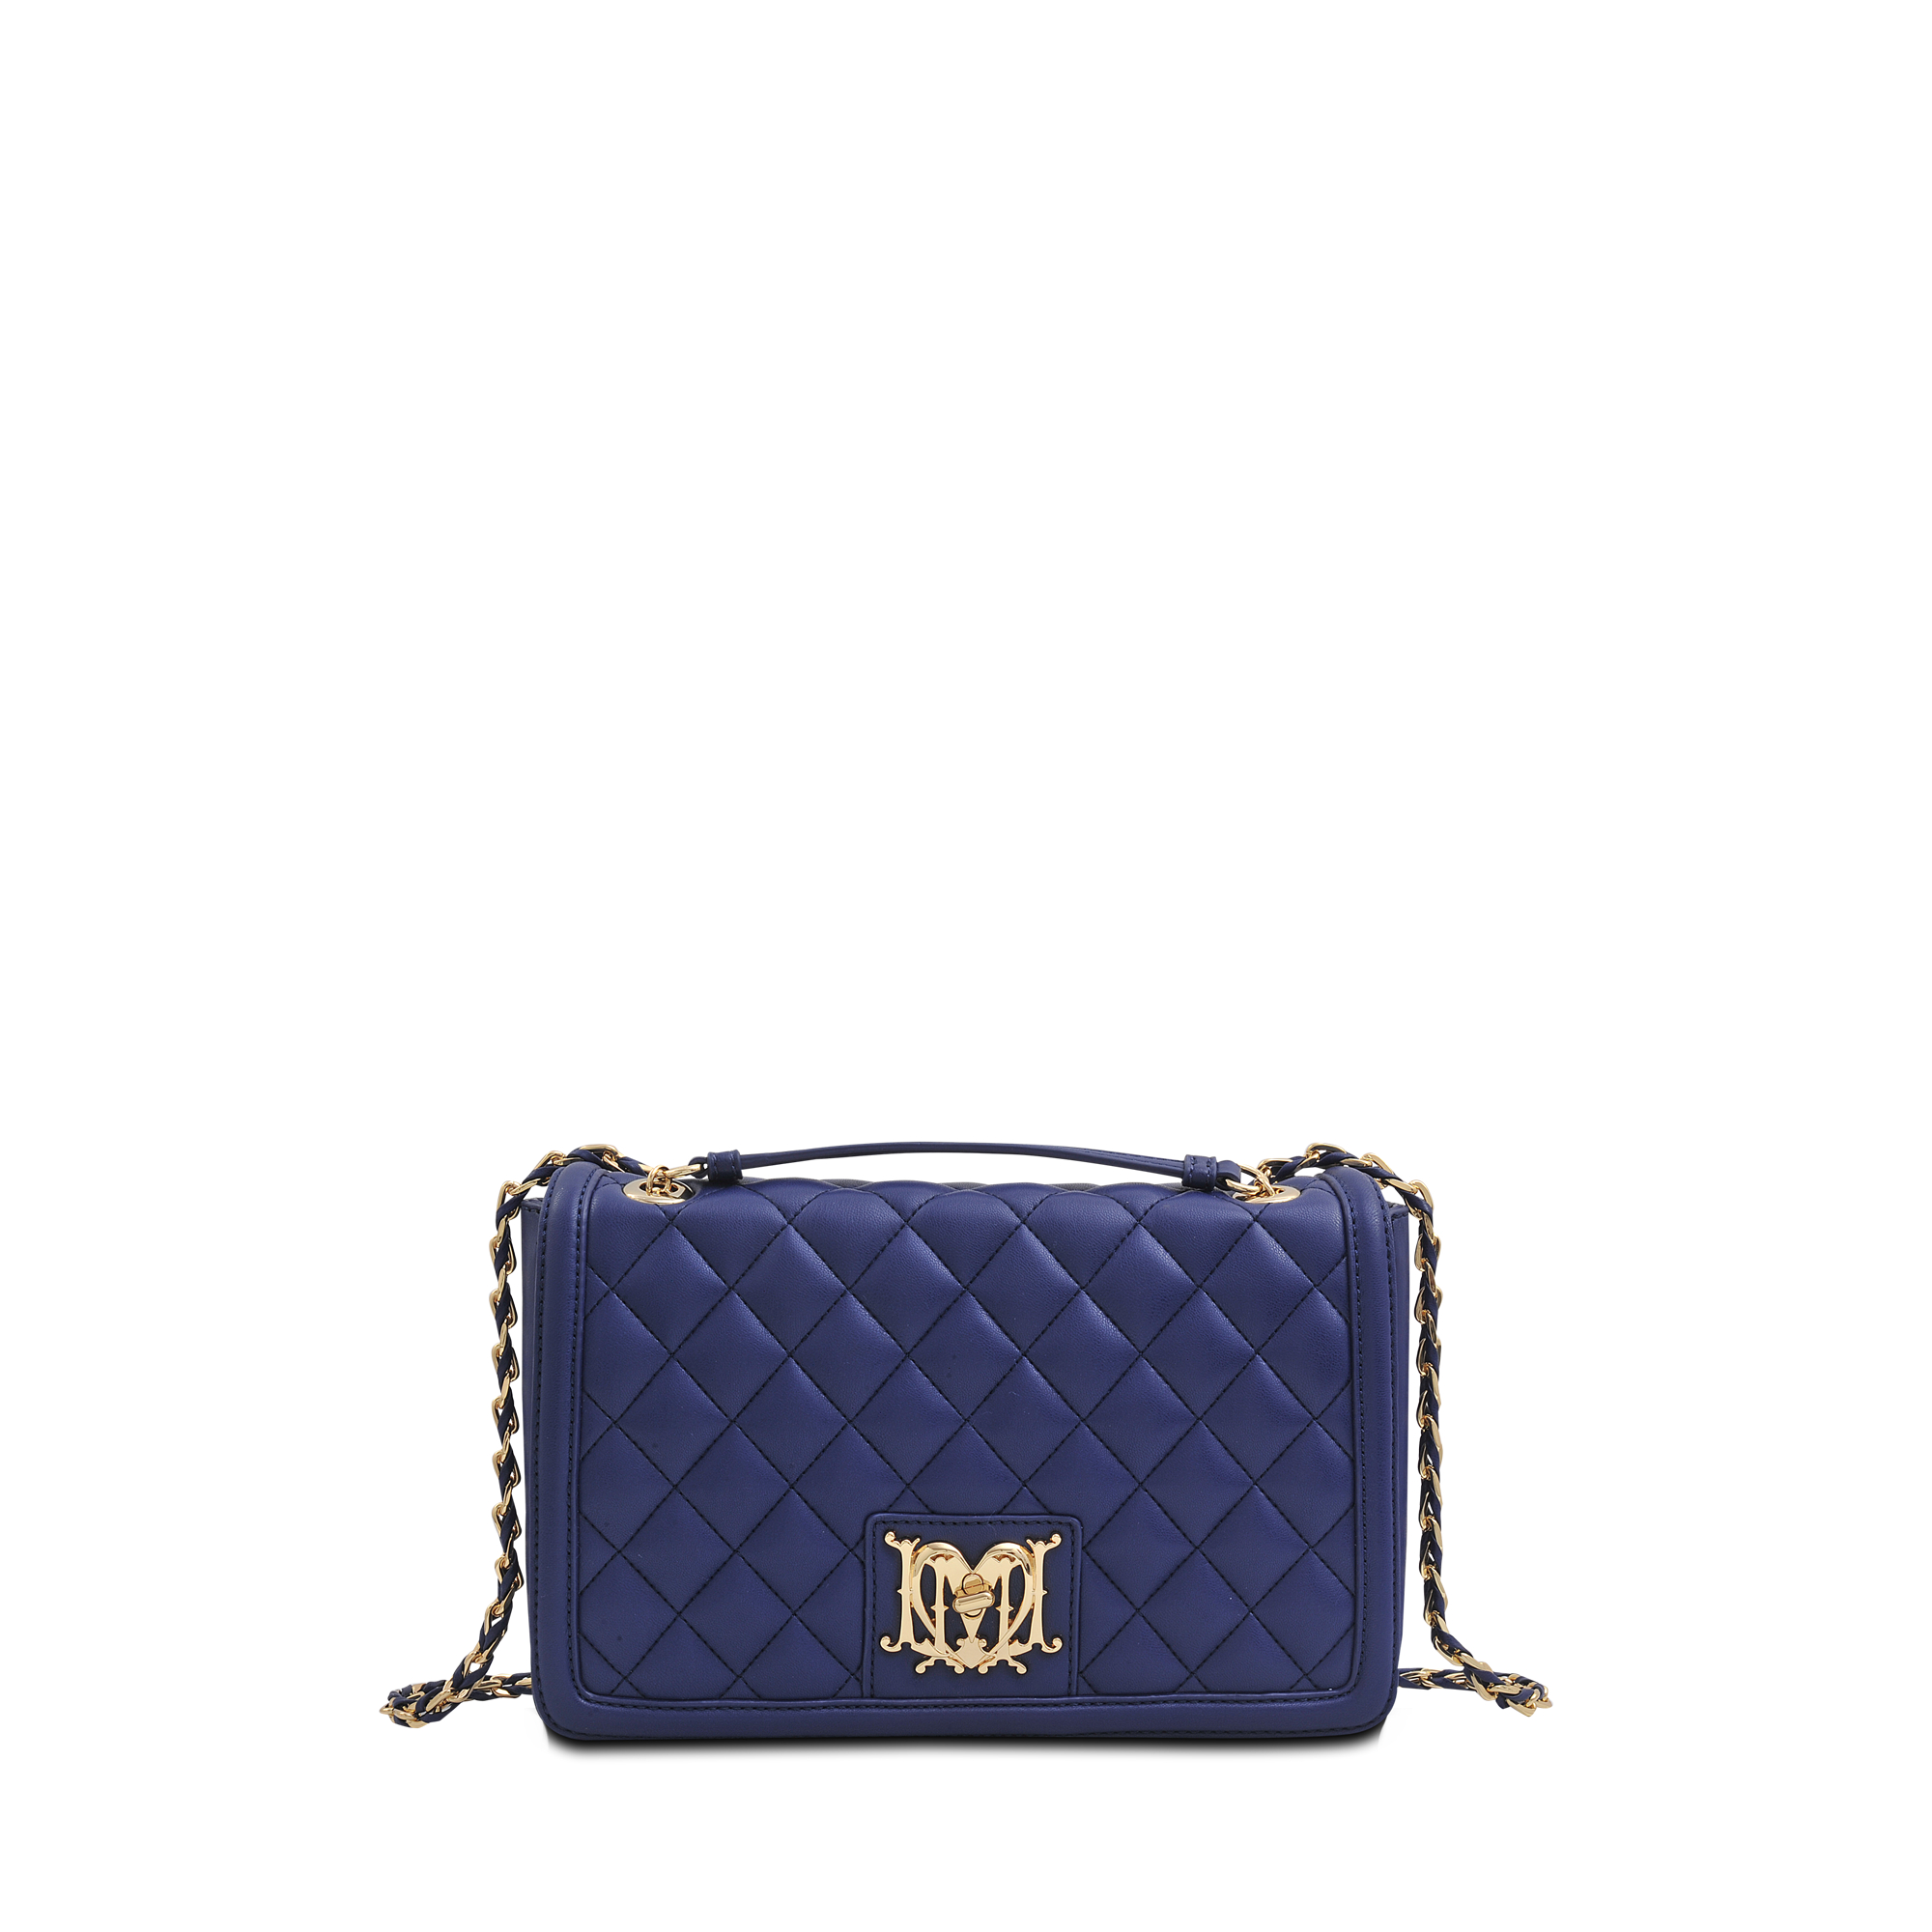 0af92c04de Love Moschino Super Quilted Flap Bag in Blue - Lyst